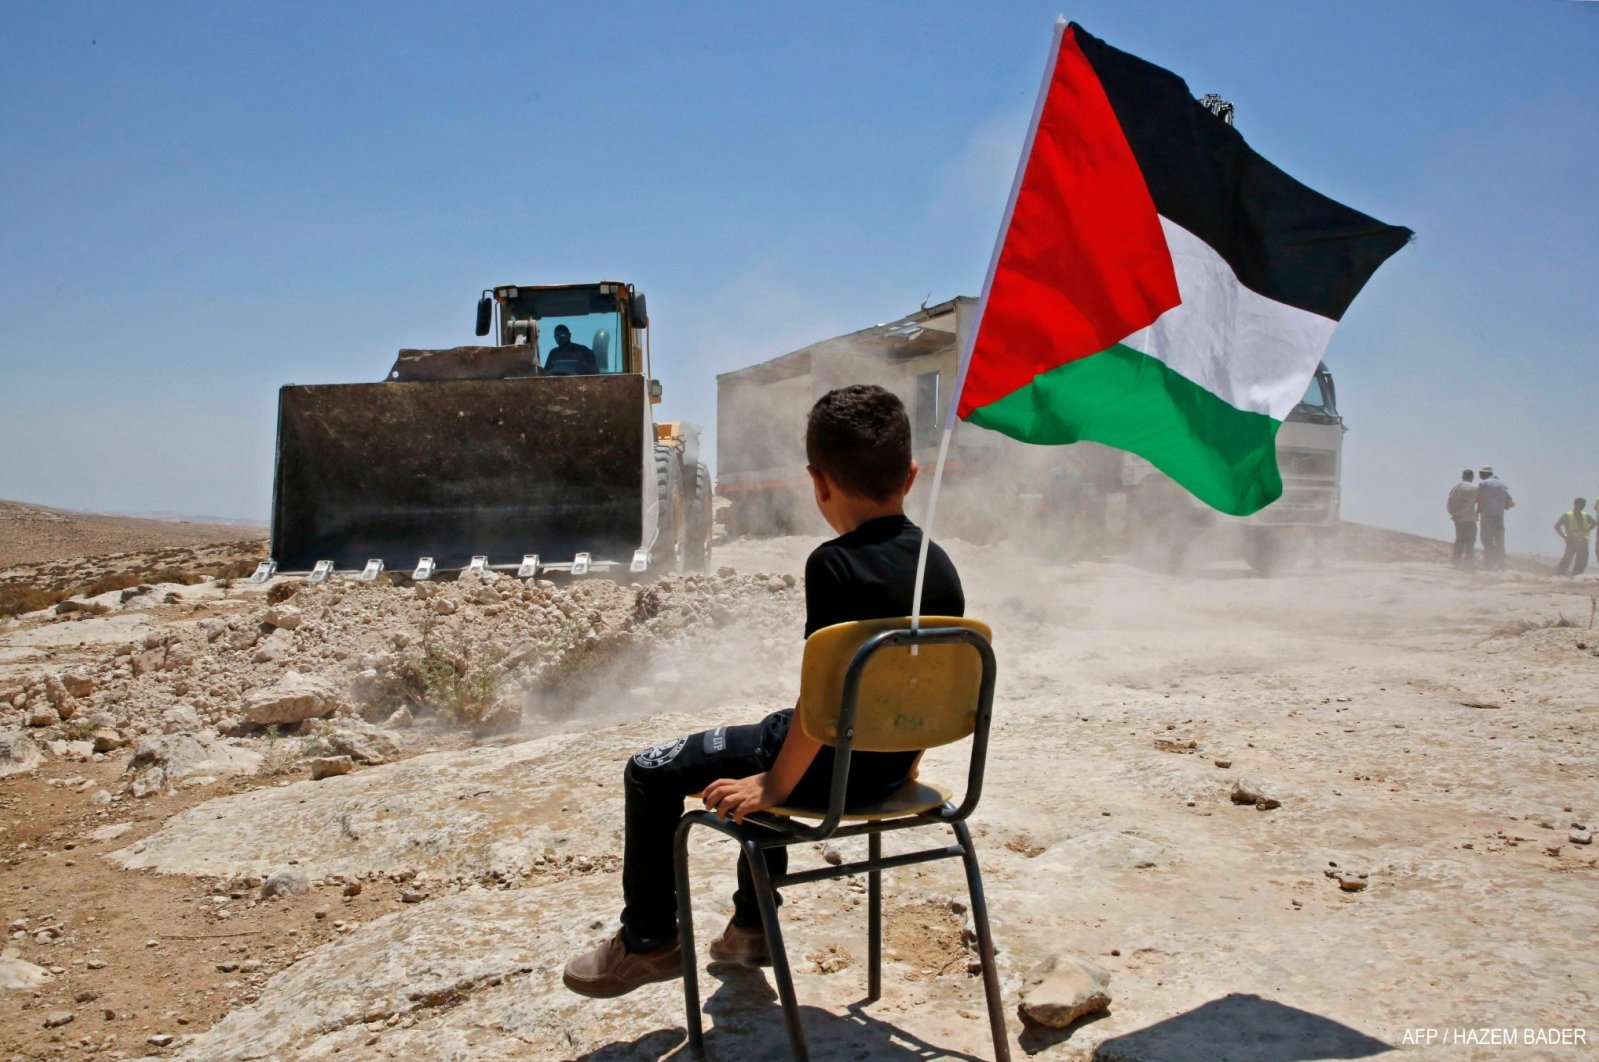 A Palestinian boy sits on a chair with a national flag as Israeli authorities demolish a school in the soon-to-be-relocated village of Yatta, south of the West Bank city of Hebron, July 11, 2018. (AFP File Photo)